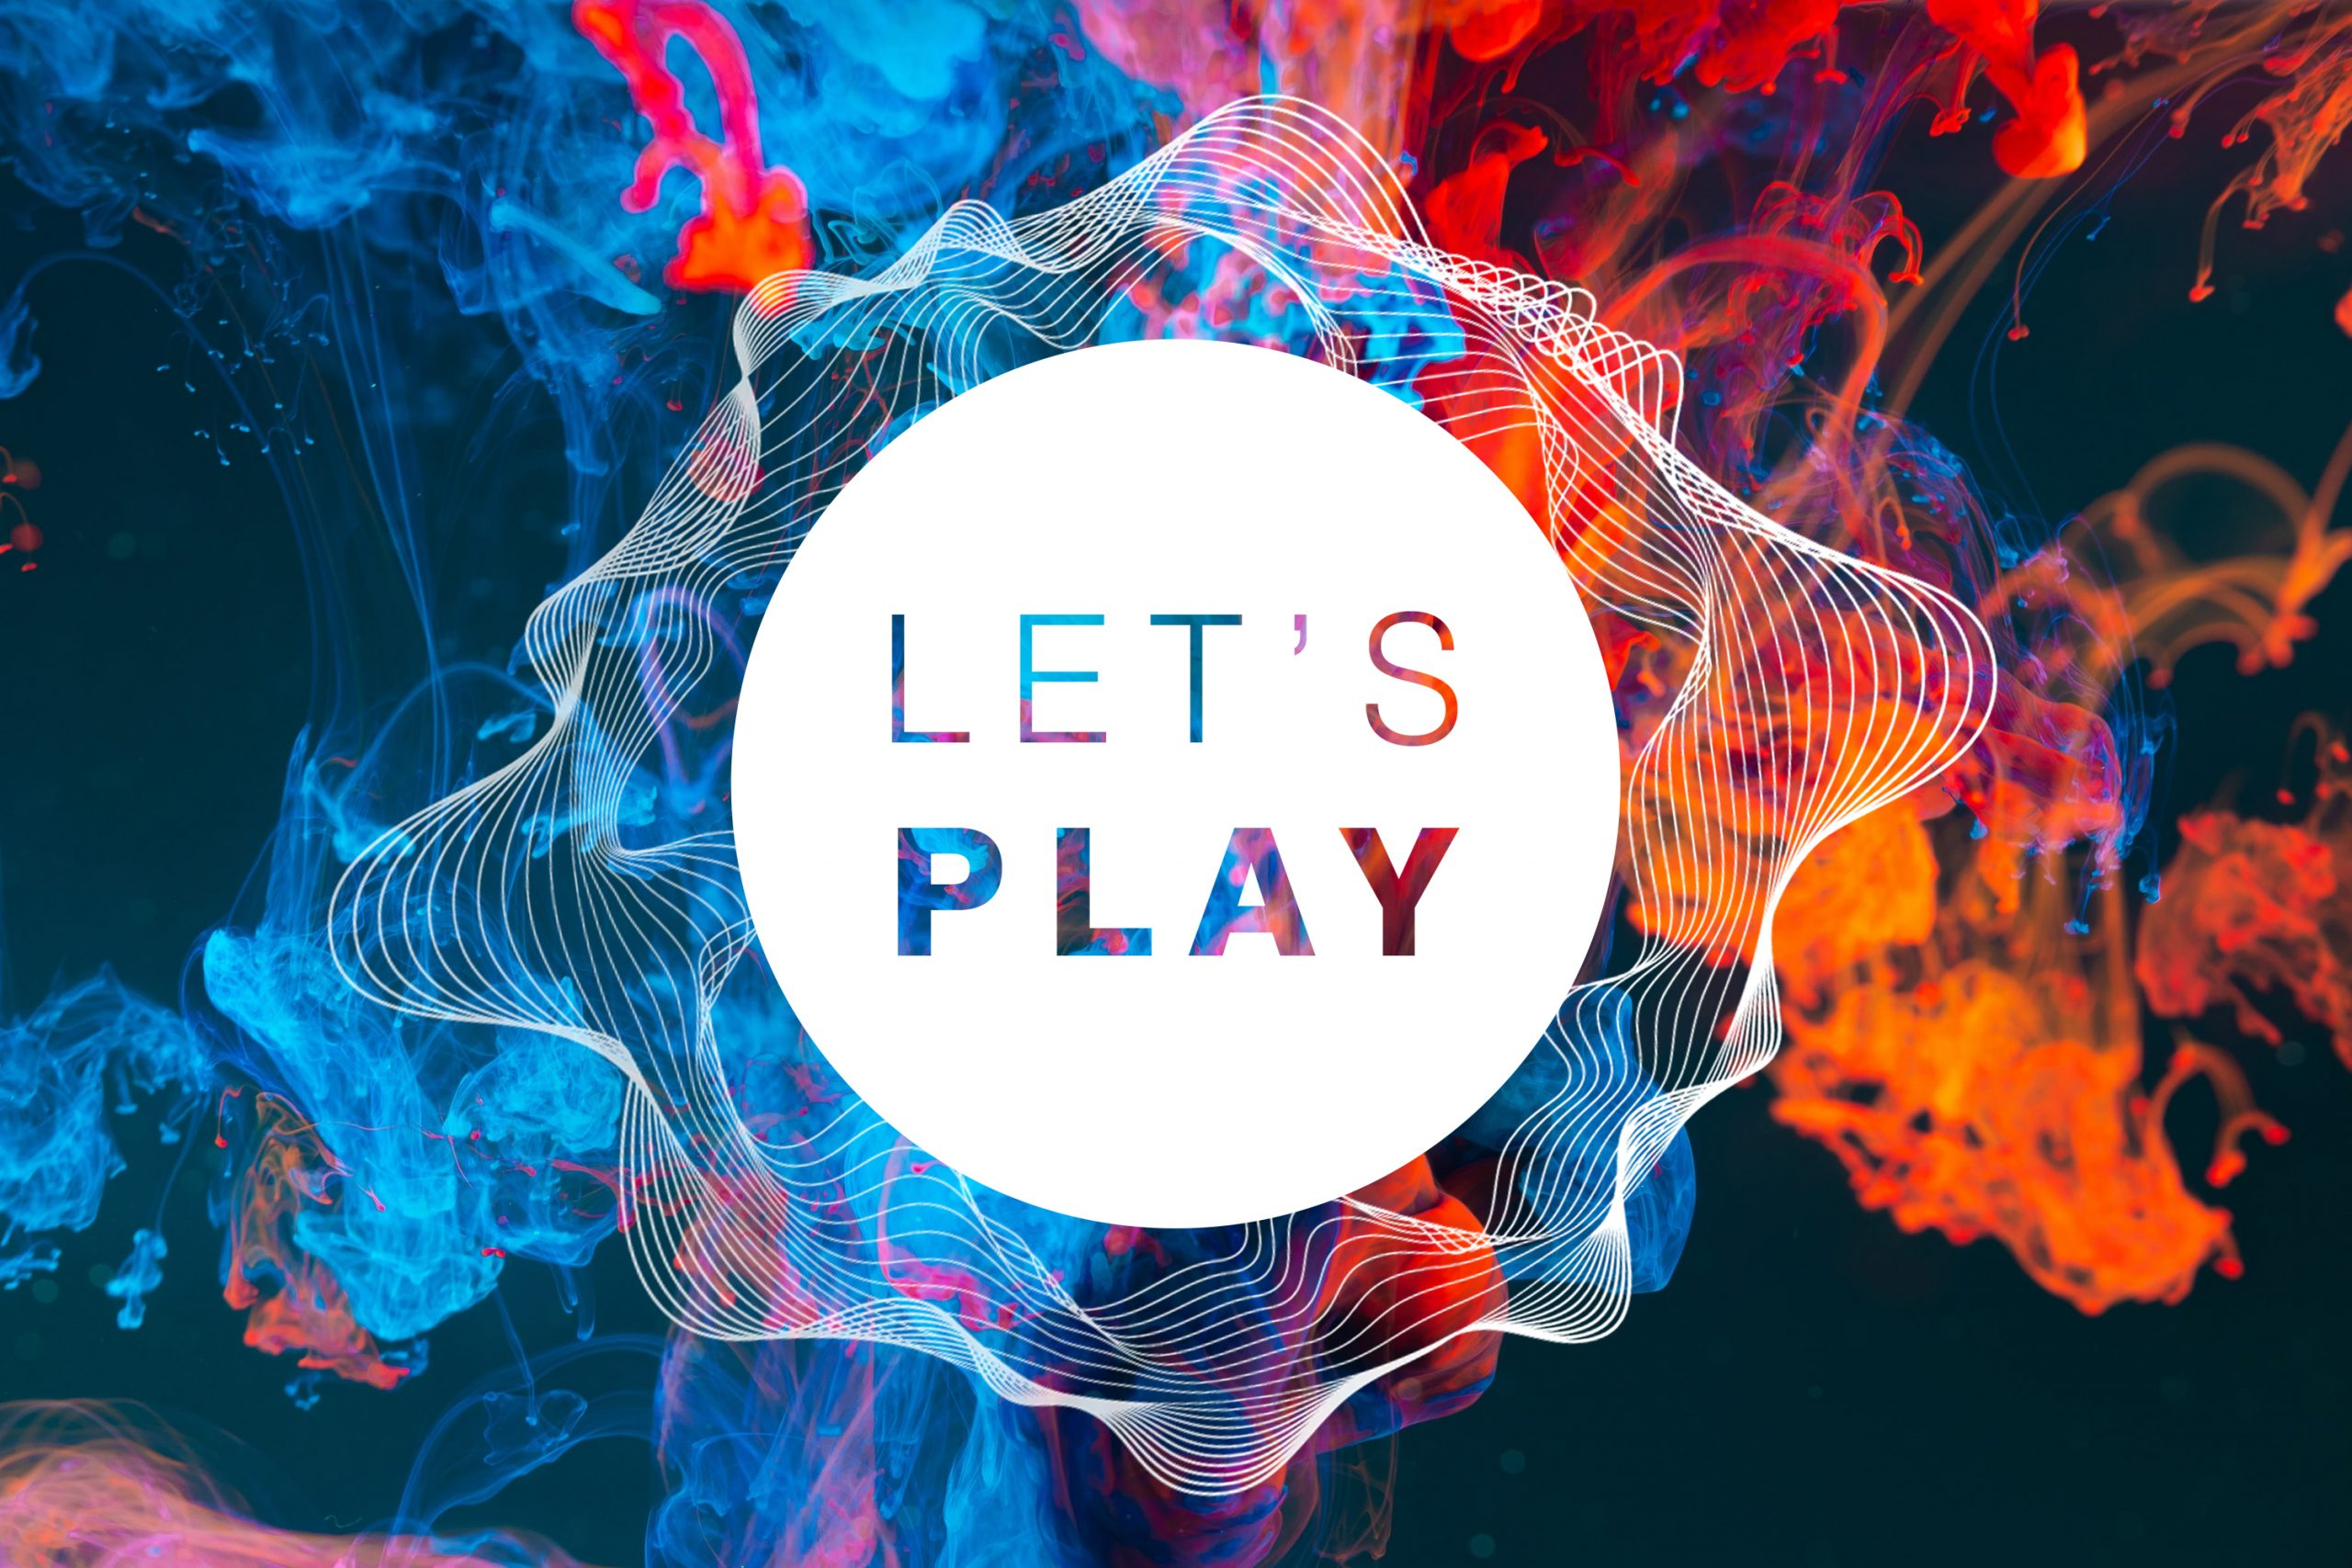 Vote for the next Let's Play Topic!